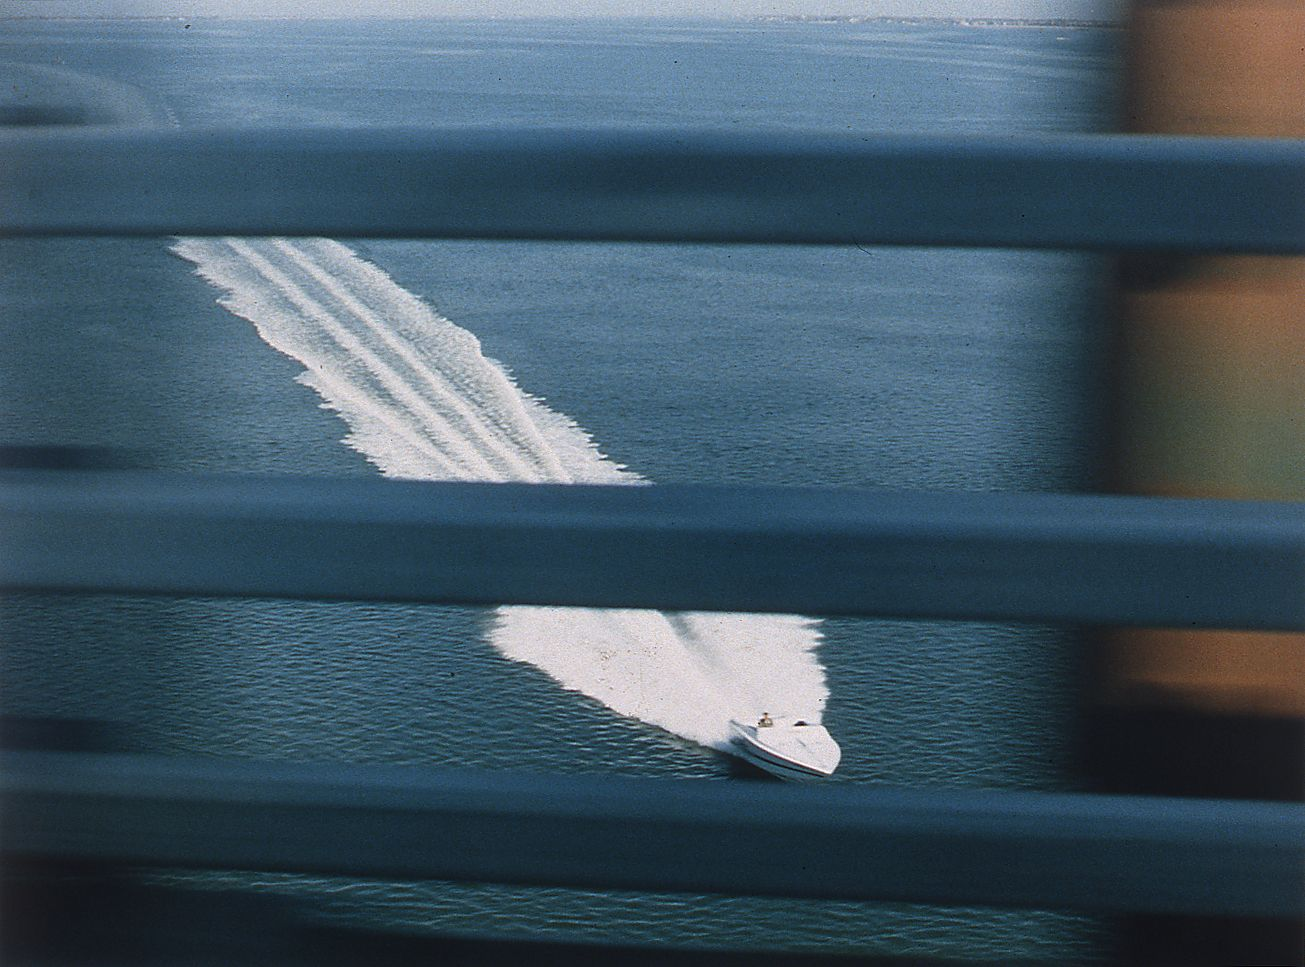 Josephine Meckseper, The Great Escape (Speedboat), 1996, c-print, 30 x 40 inches